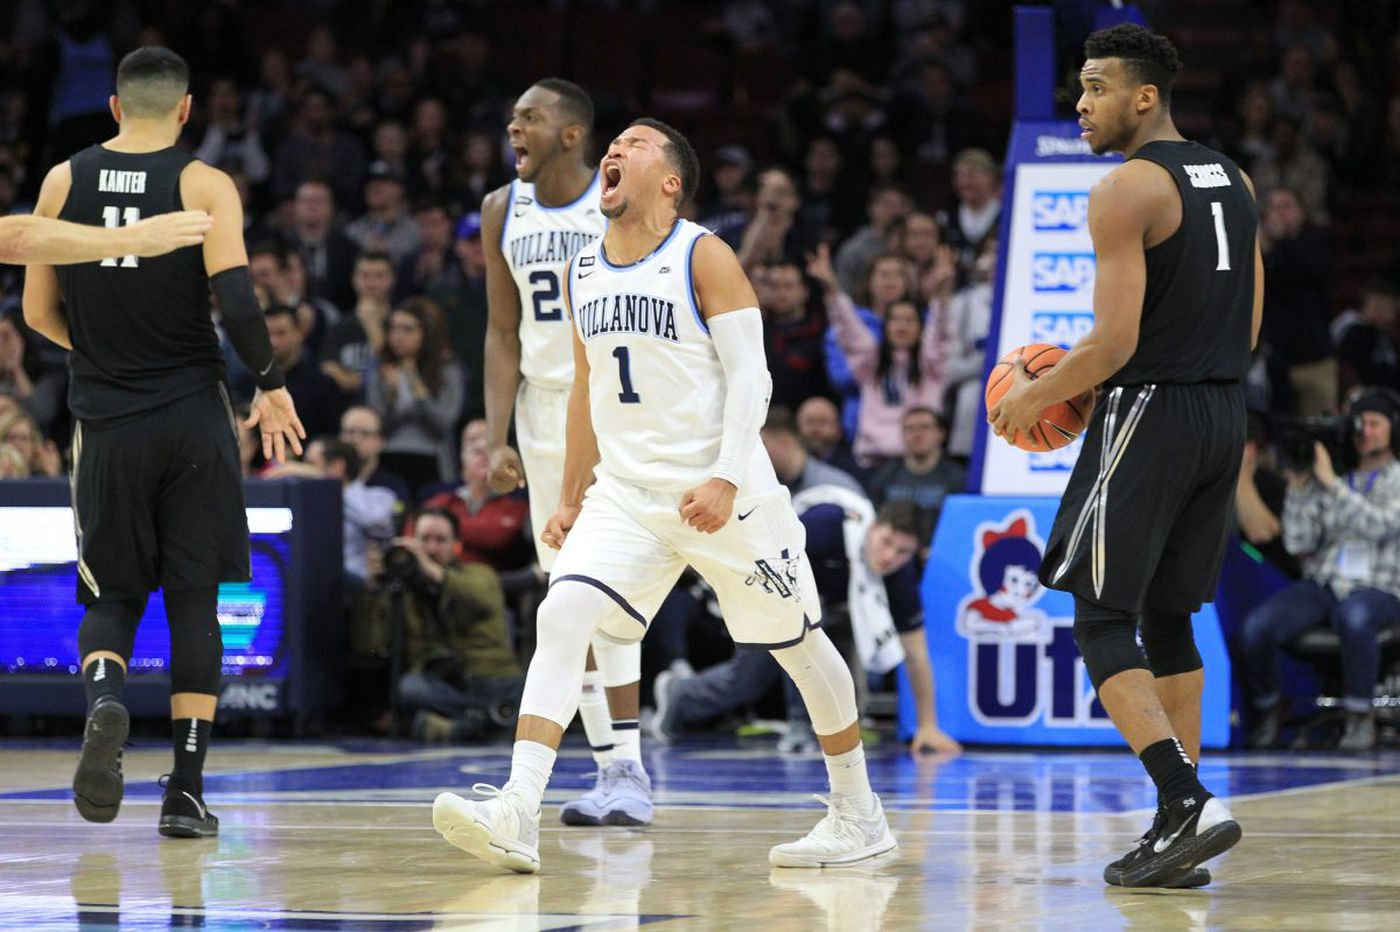 Villanova beats No. 10 Xavier to continue reign of Big East, Musketeers